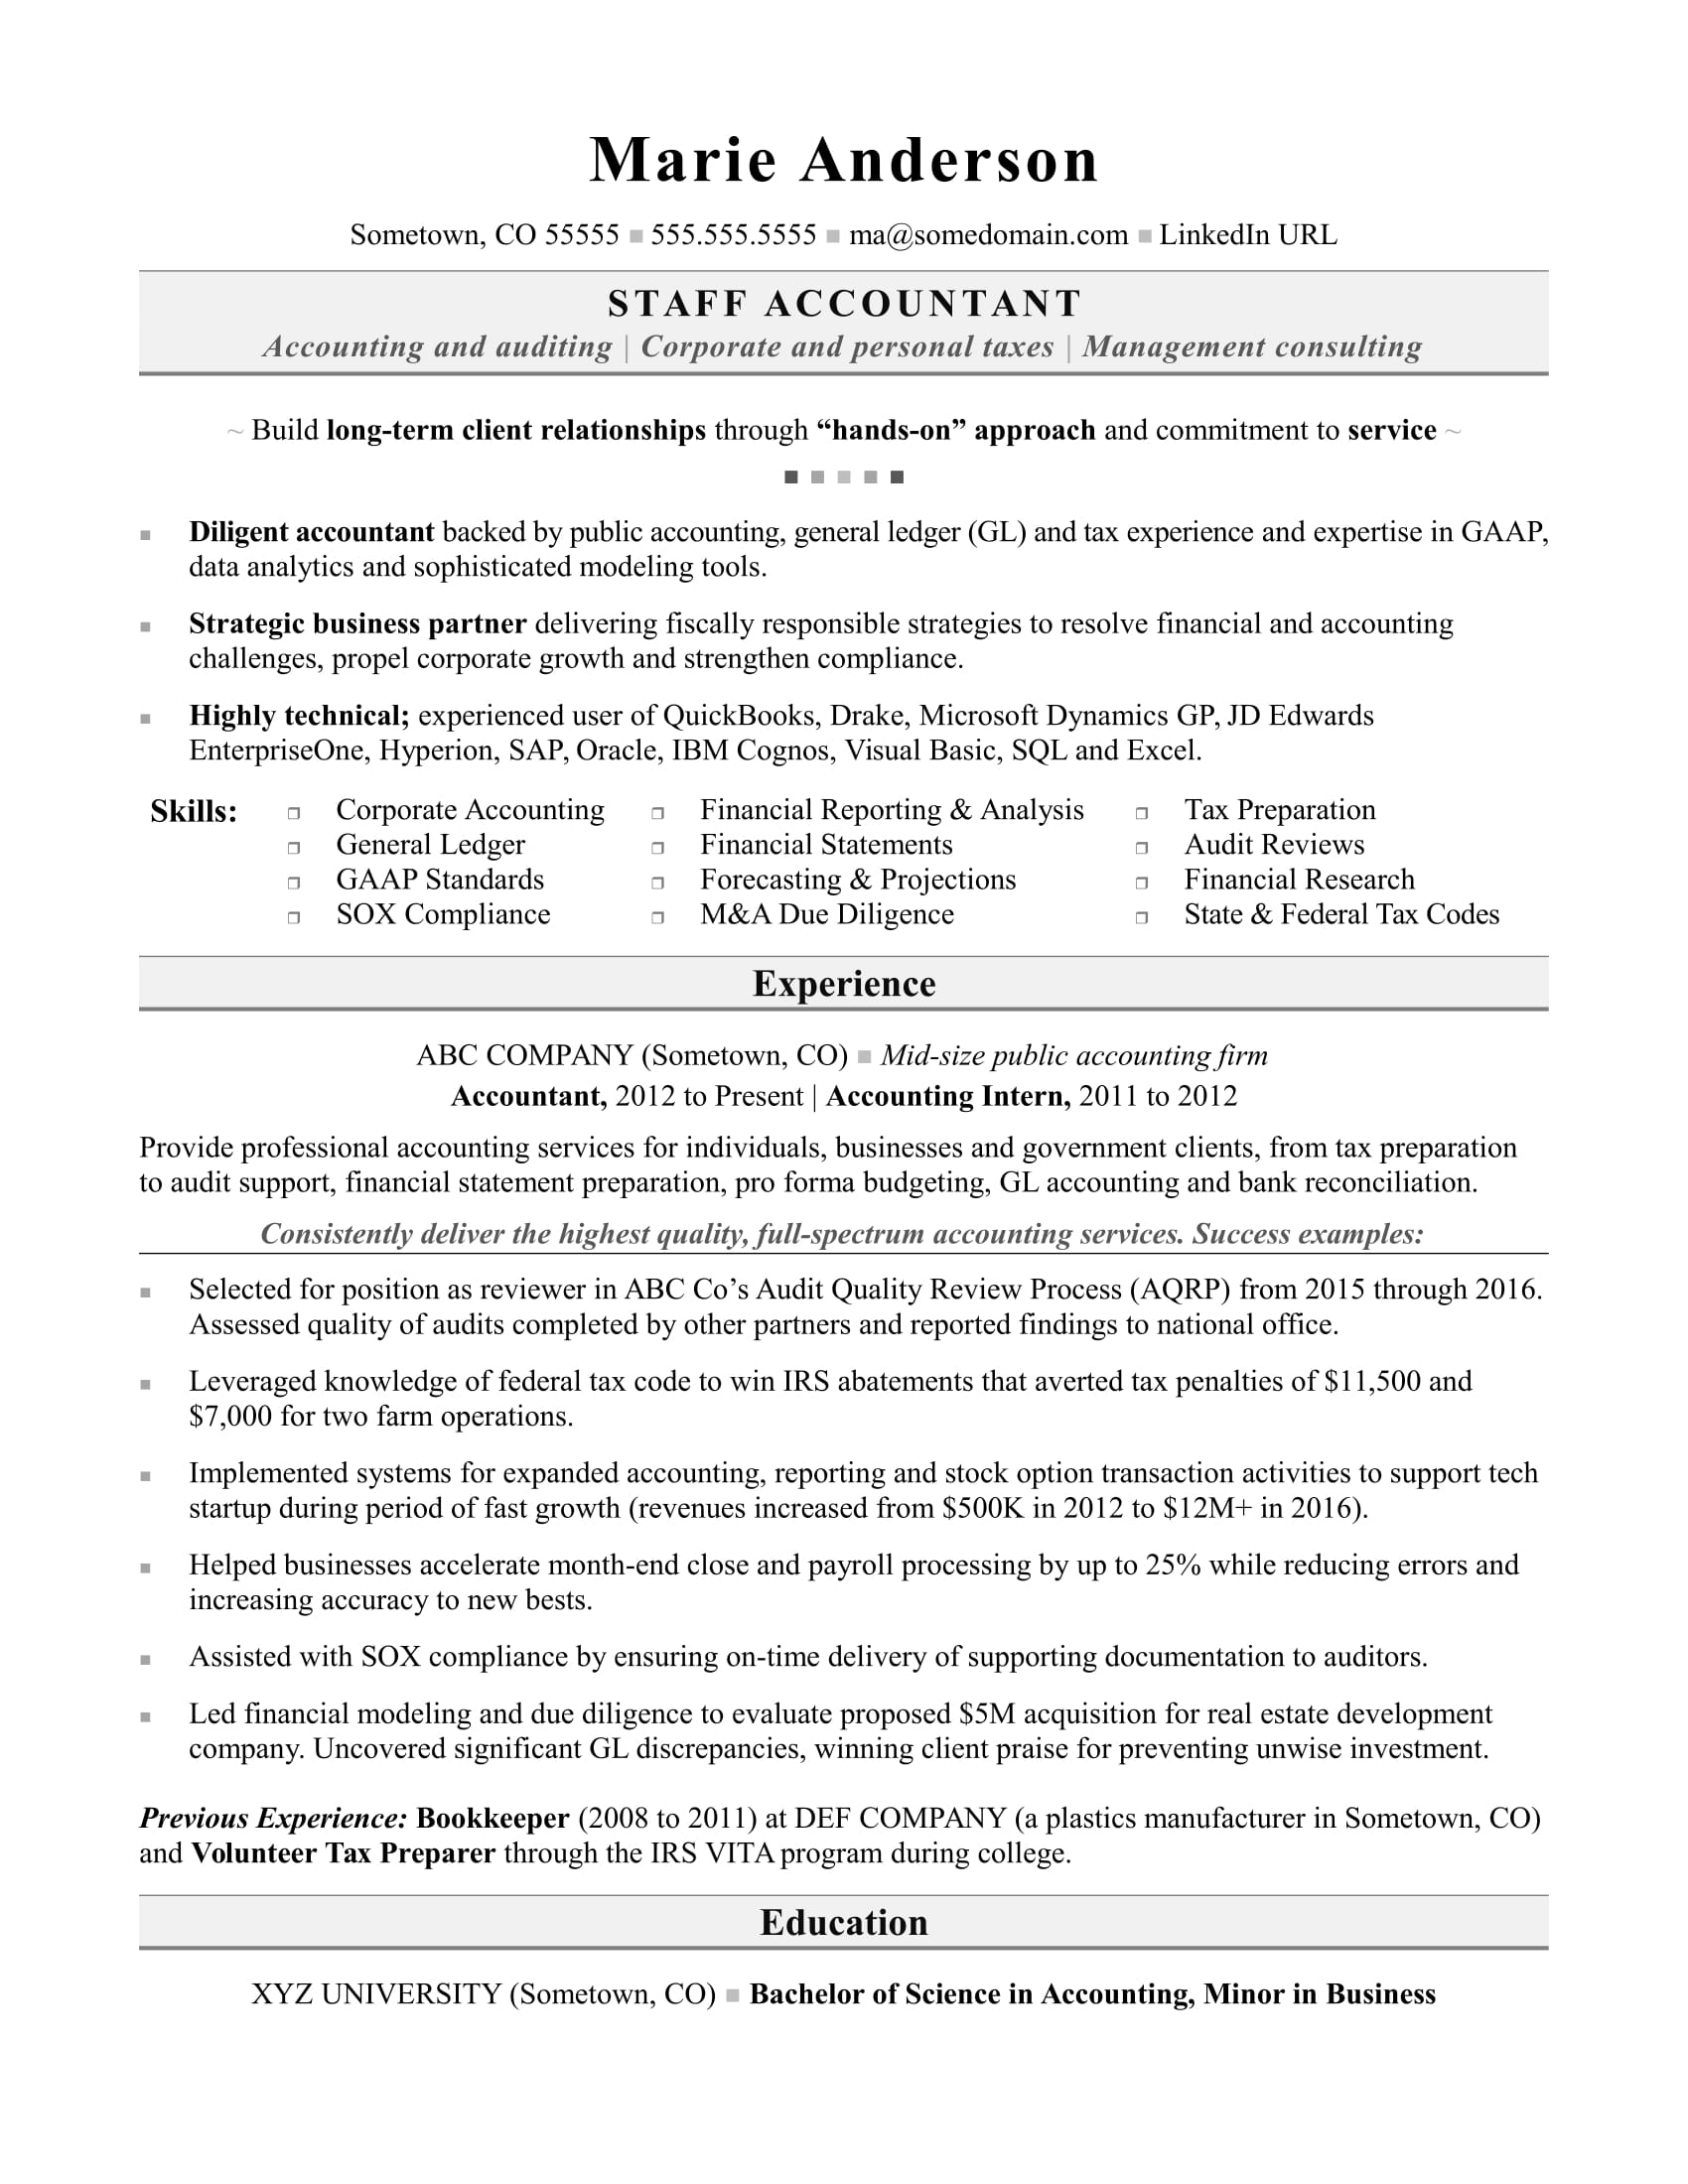 Accounting Resume Sample | Monster.com